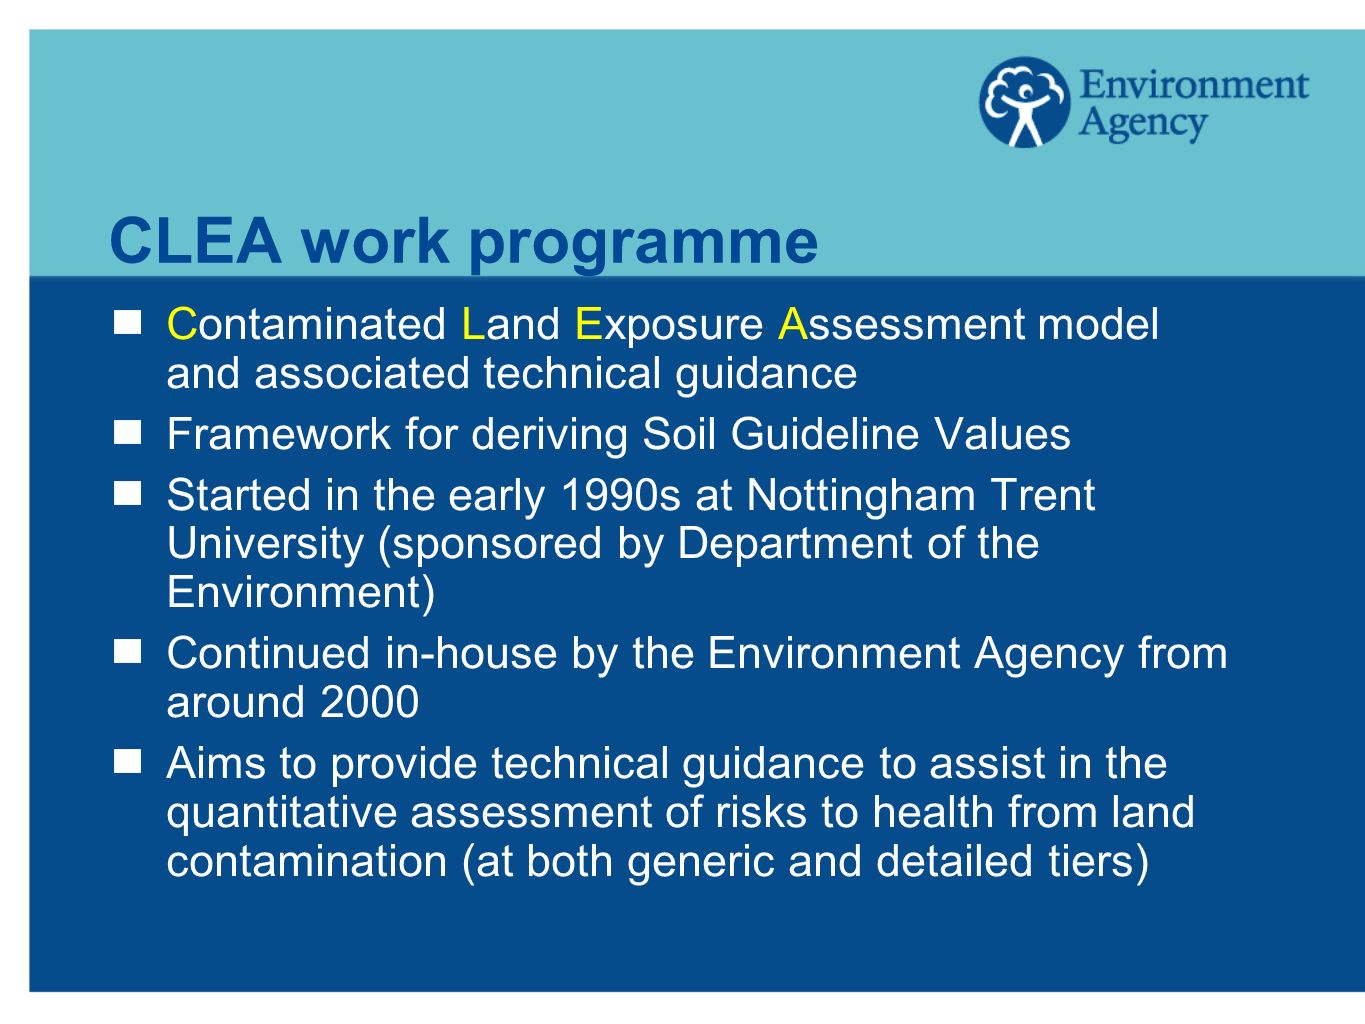 CLEA work programme Contaminated Land Exposure Assessment model and associated technical guidance Framework for deriving Soil Guideline Values Started